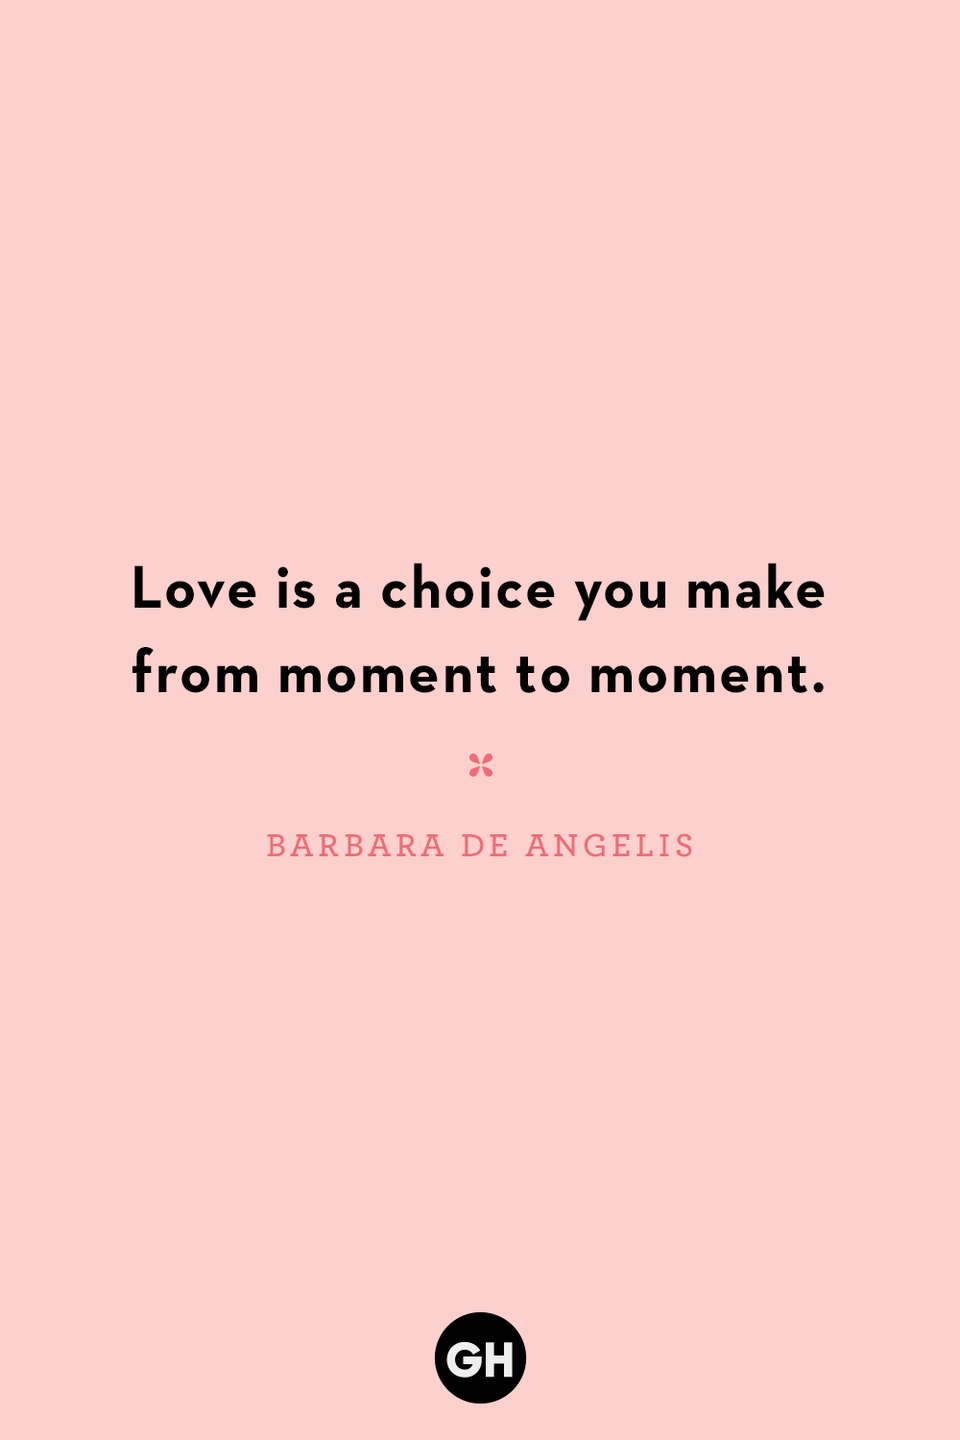 <p>Love is a choice you make from moment to moment.</p>